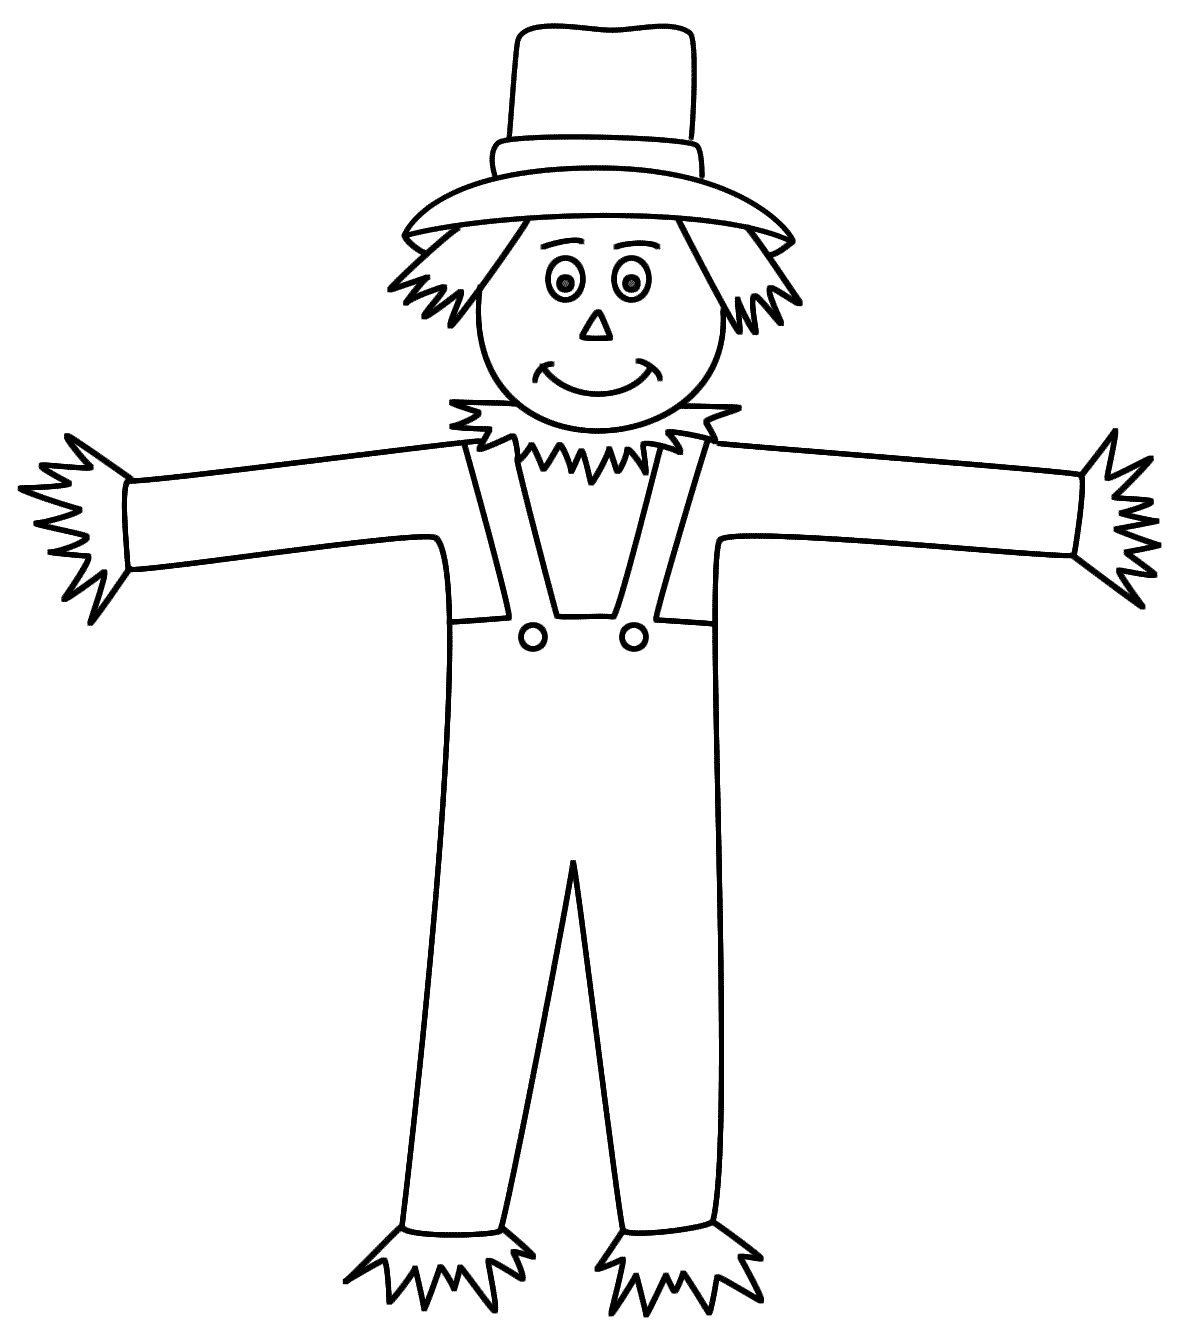 Scarecrow images coloring pages coloring home for Printable scarecrow coloring pages